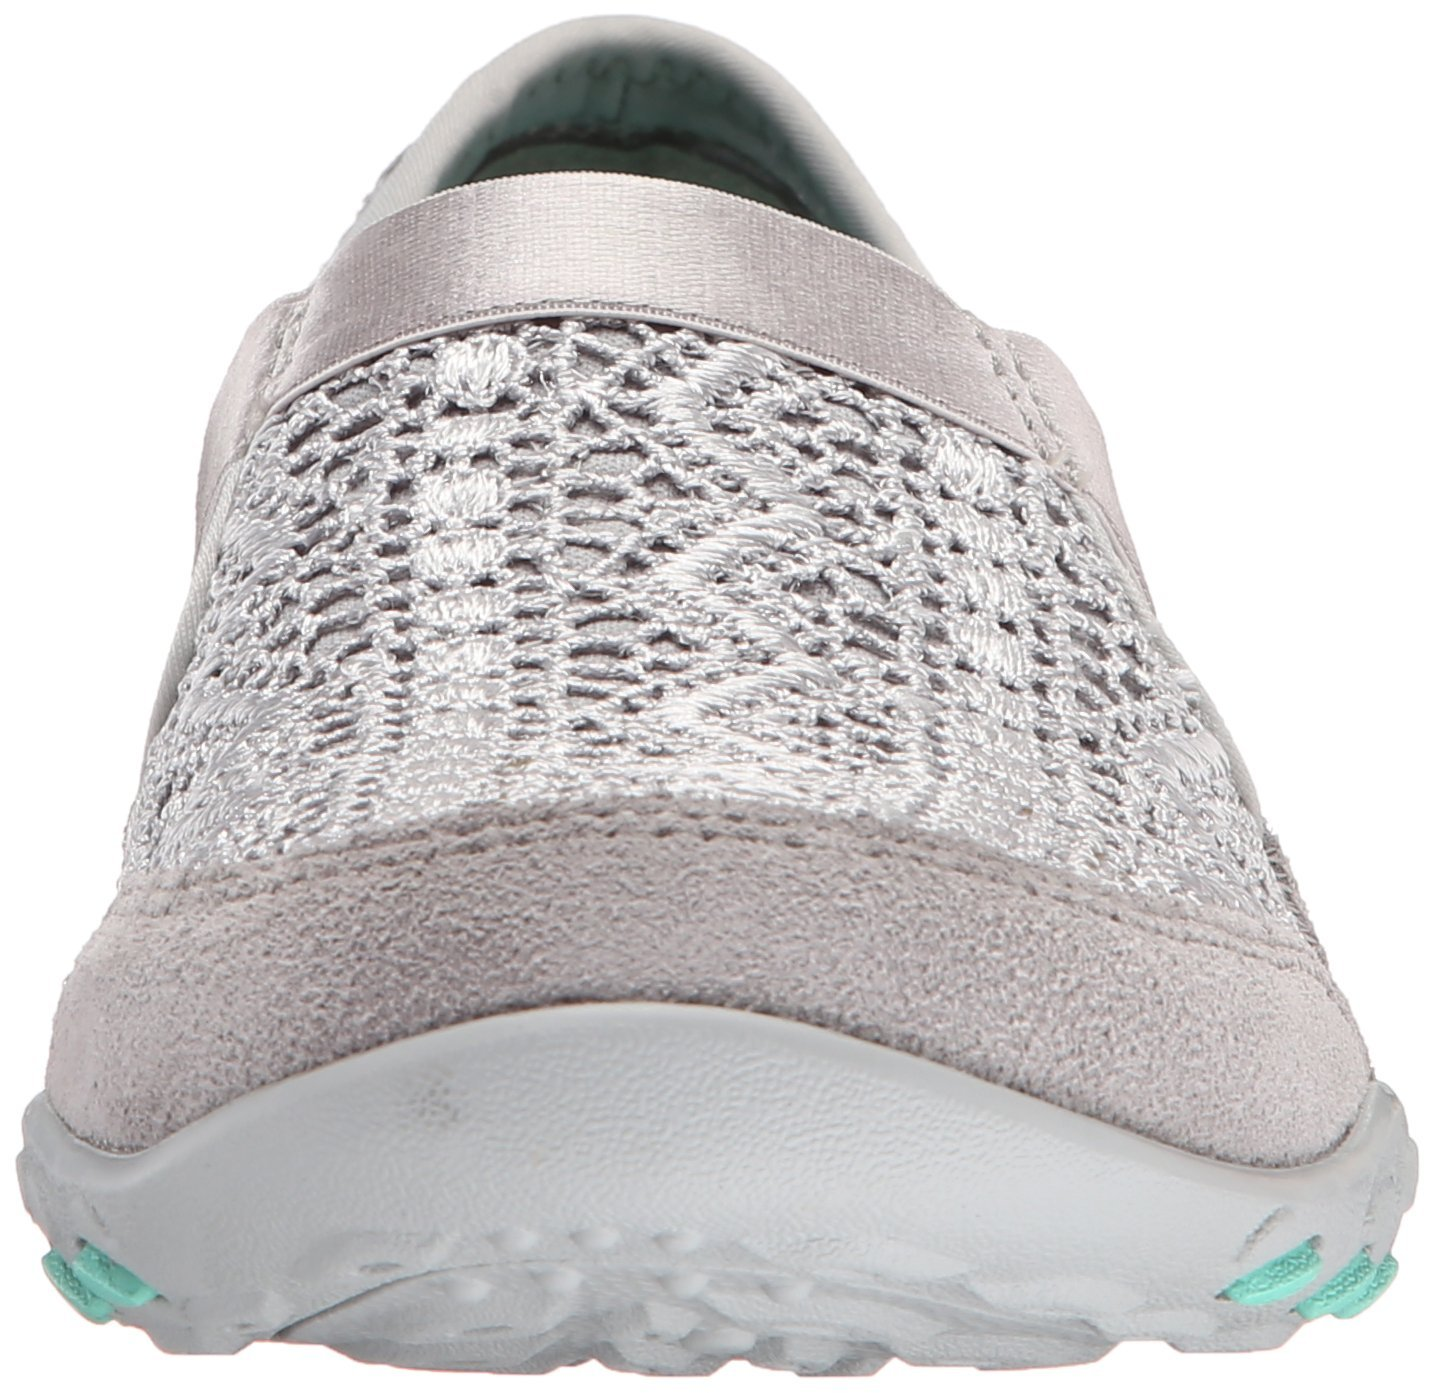 d23b13c62a81 ... Skechers Our Sport Women s Beathe Easy Our Skechers Song Fashion  Sneaker B01C70H7RY 10 B(M ...